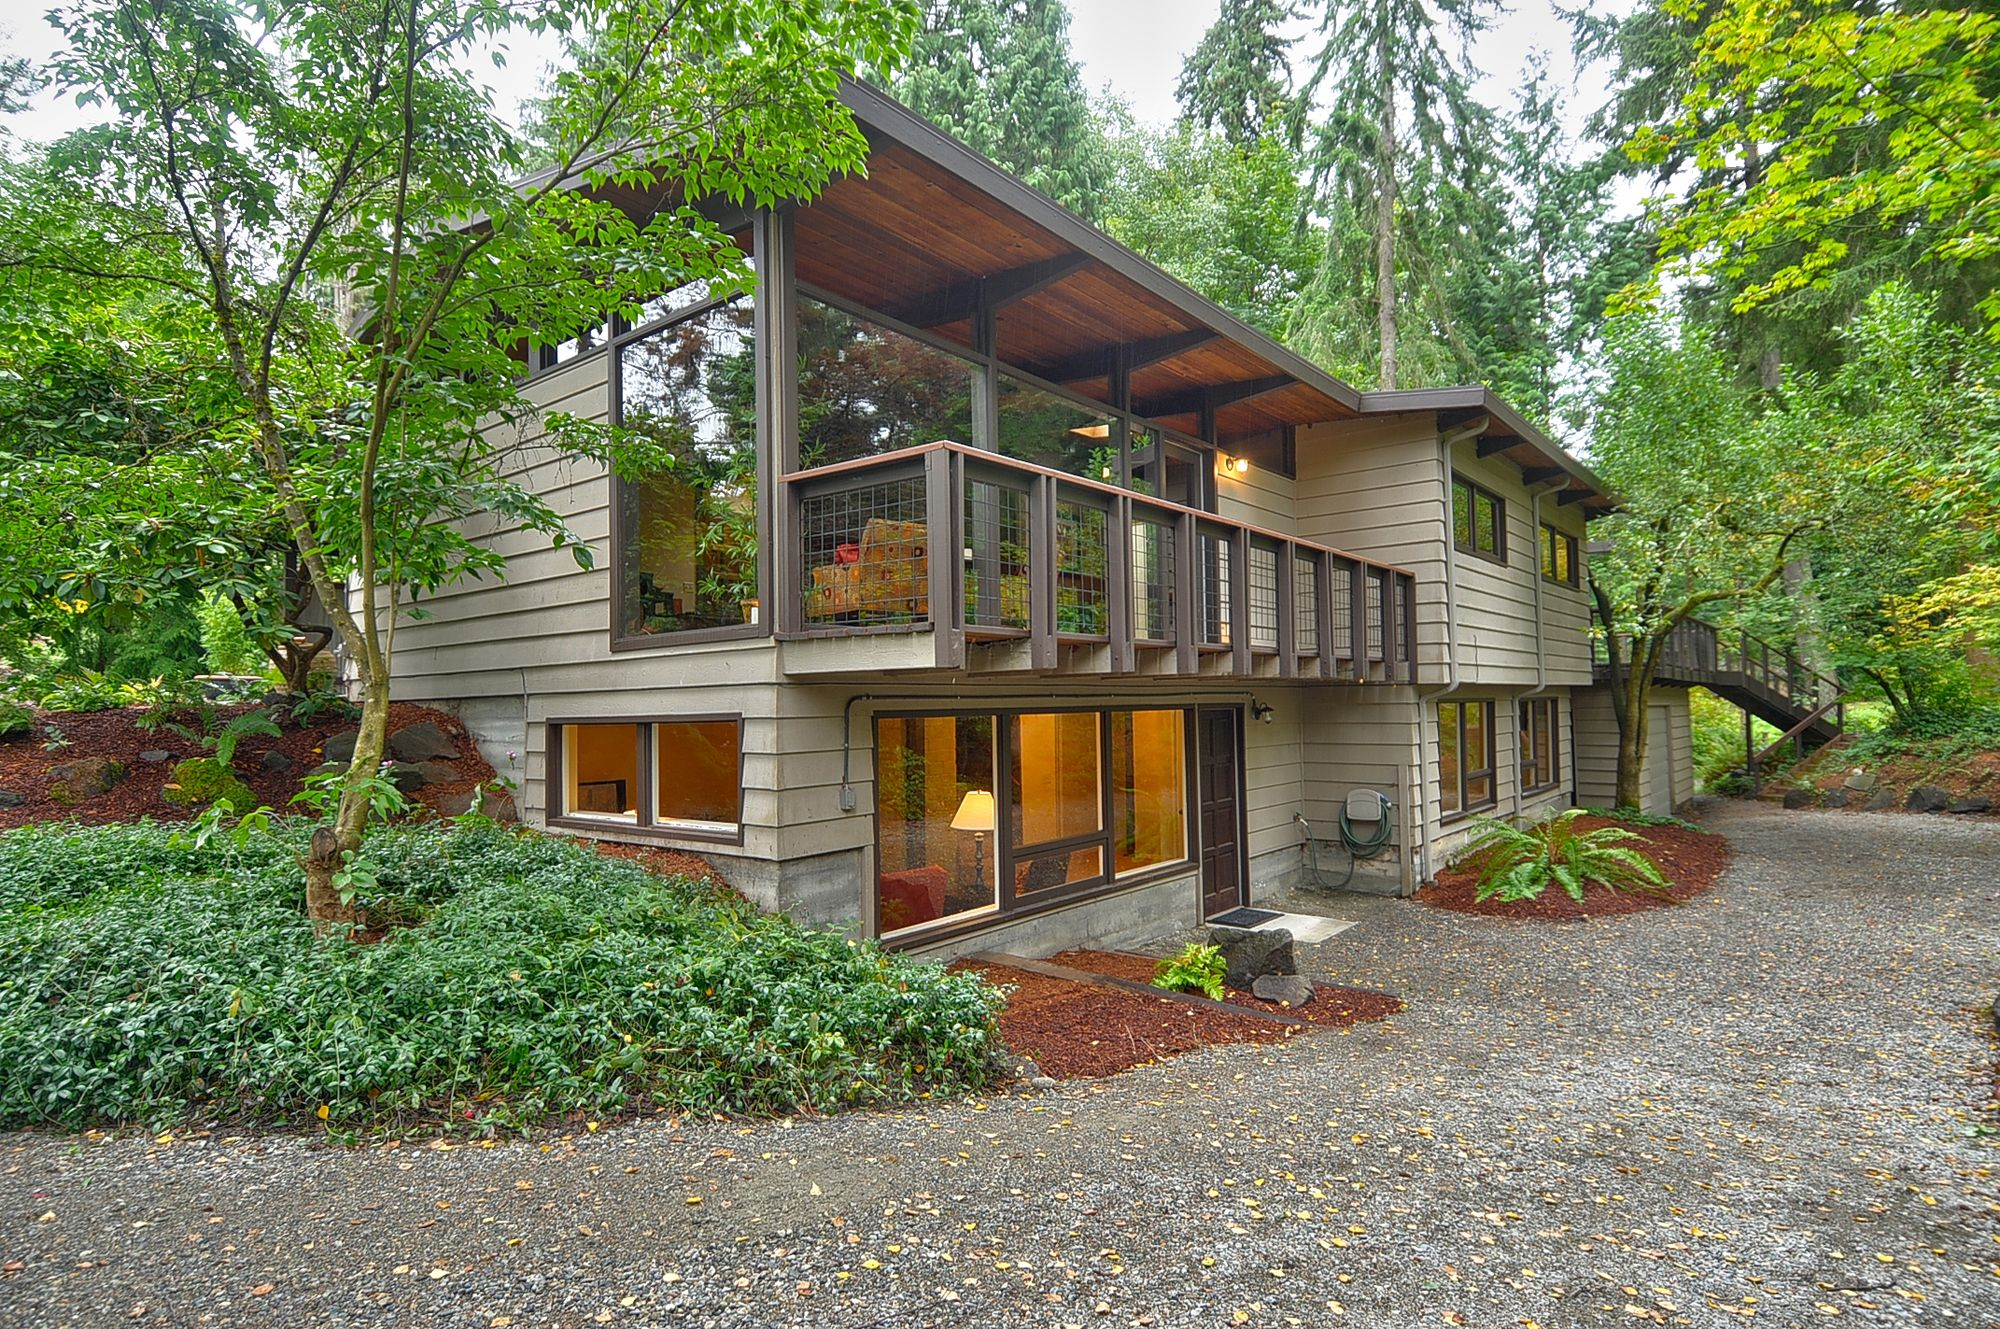 30ab1211dd720c0e059899b56156be1e Pacific Northwest House Plans Small Cottage on south house plans, united states house plans, northwest modern home plans, wisconsin house plans, northwest style house plans, northwest beach house plans, vancouver island house plans, modern timber frame house plans, eastern house plans, egypt house plans, norway house plans, little passive solar home plans, french house plans, americas house plans, northwest home design plans, boston house plans, everett house plans, south west home plans, northwest craftsman house plans, pendleton house plans,